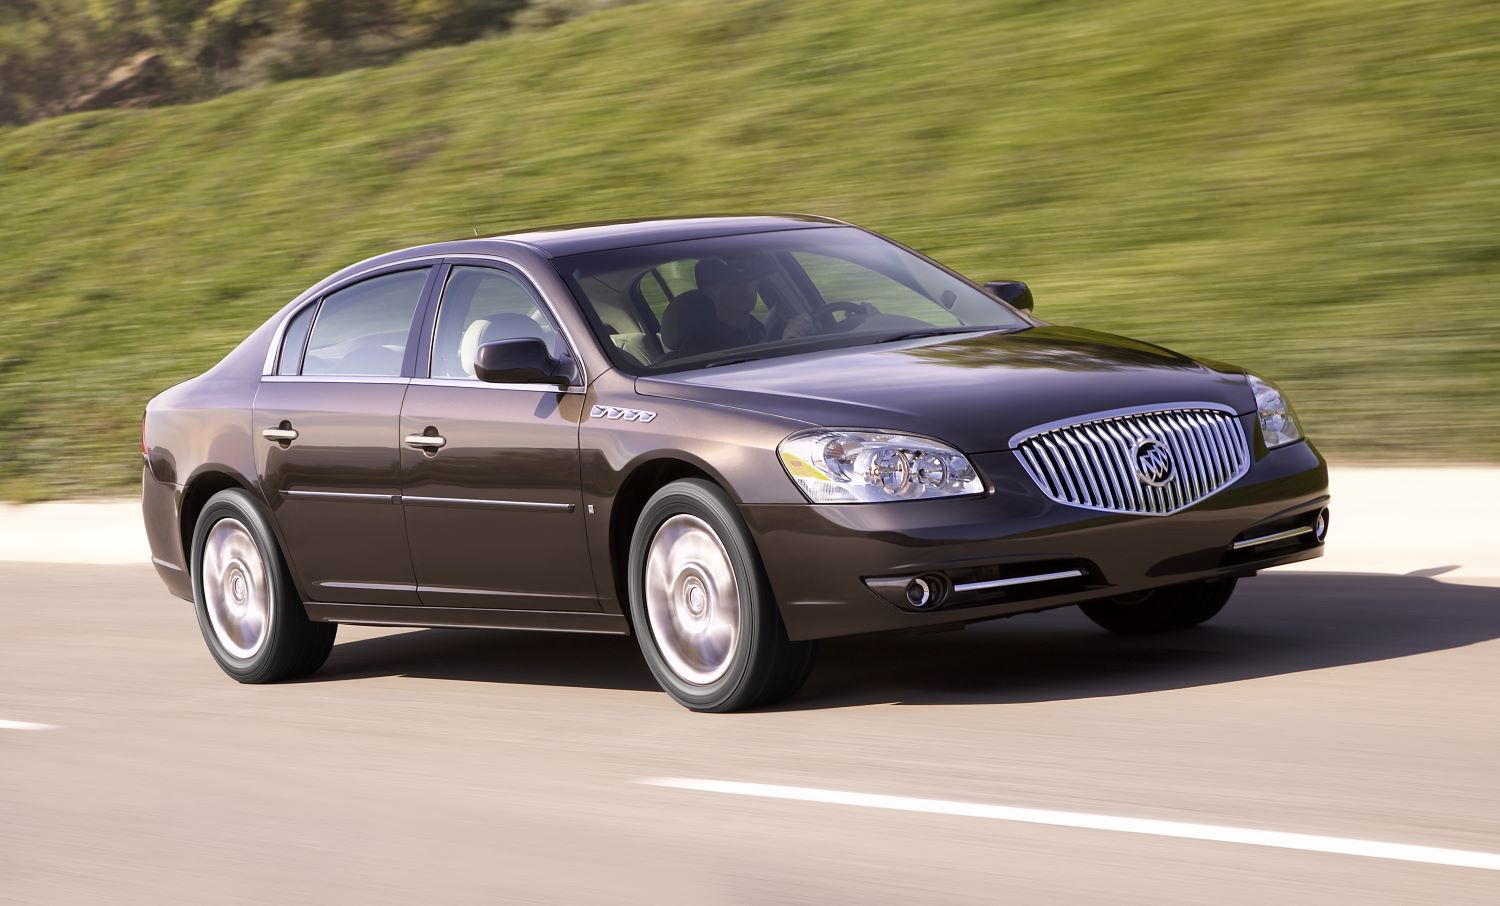 2006 Buick Lucerne Prone To Engine Problems | Gm Authority New 2022 Buick Lucerne Interior, Problems, Review